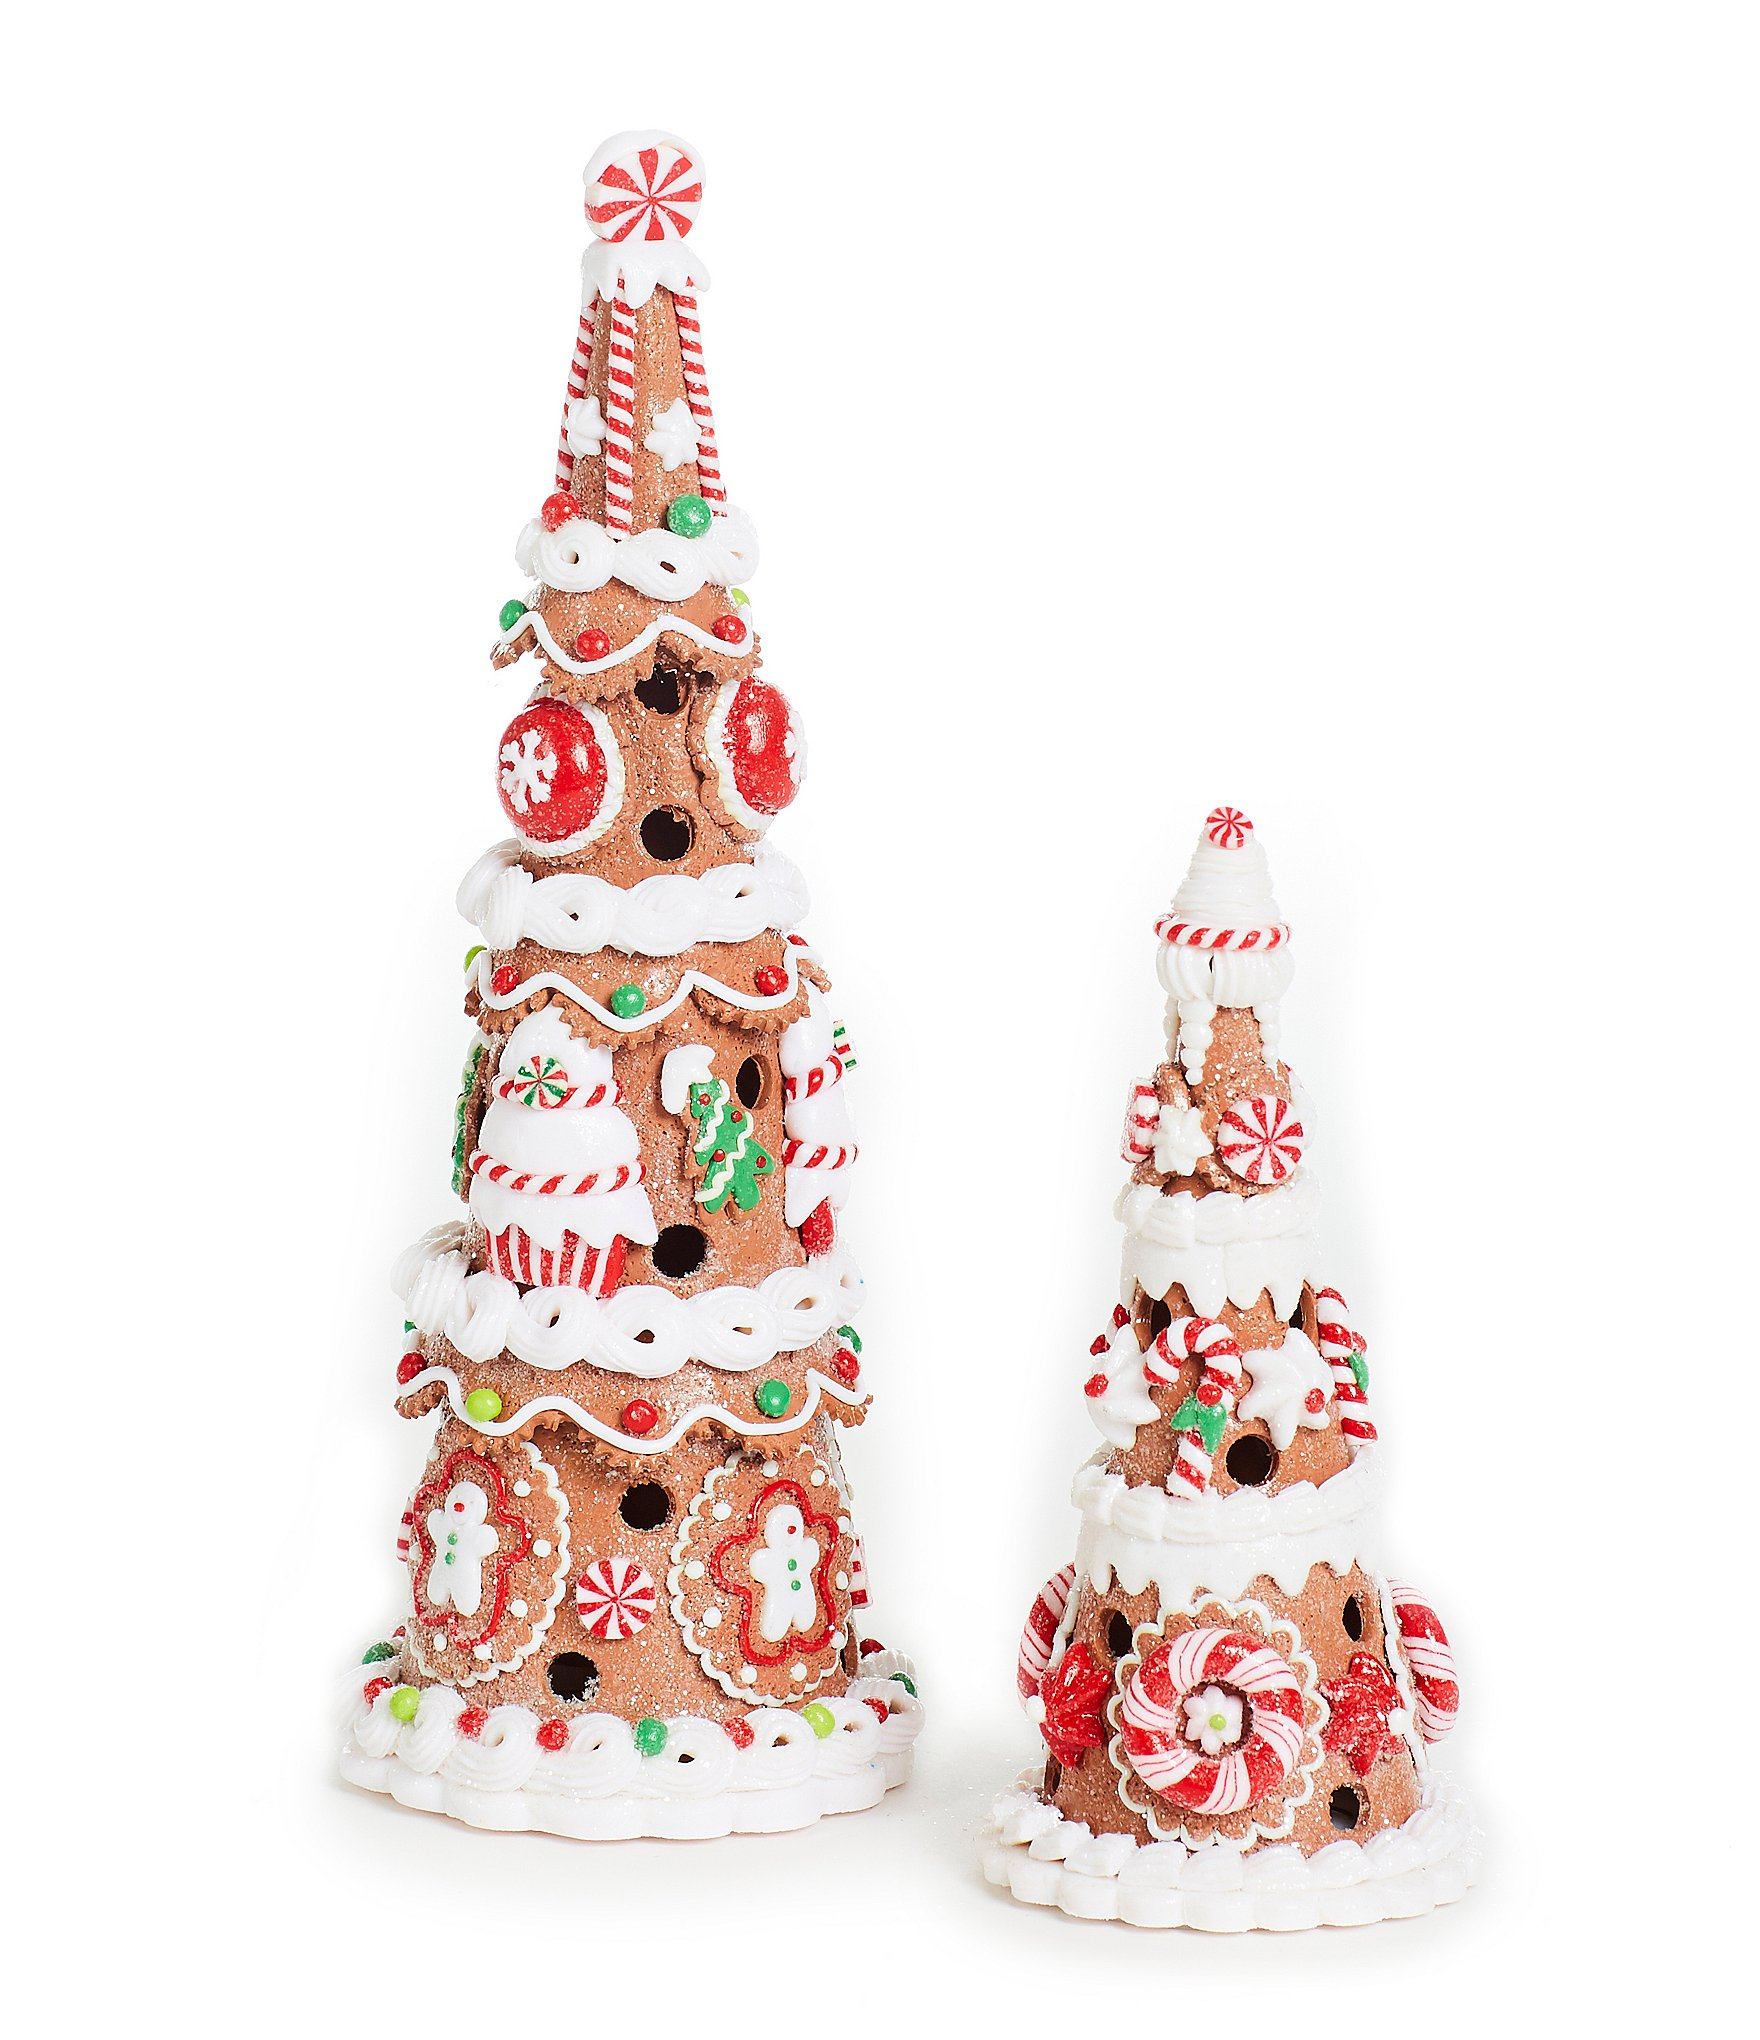 Gingerbread Christmas Tree.Trimsetter Gingerbread Collection Led Lighted Gingerbread Tree Holiday Decor